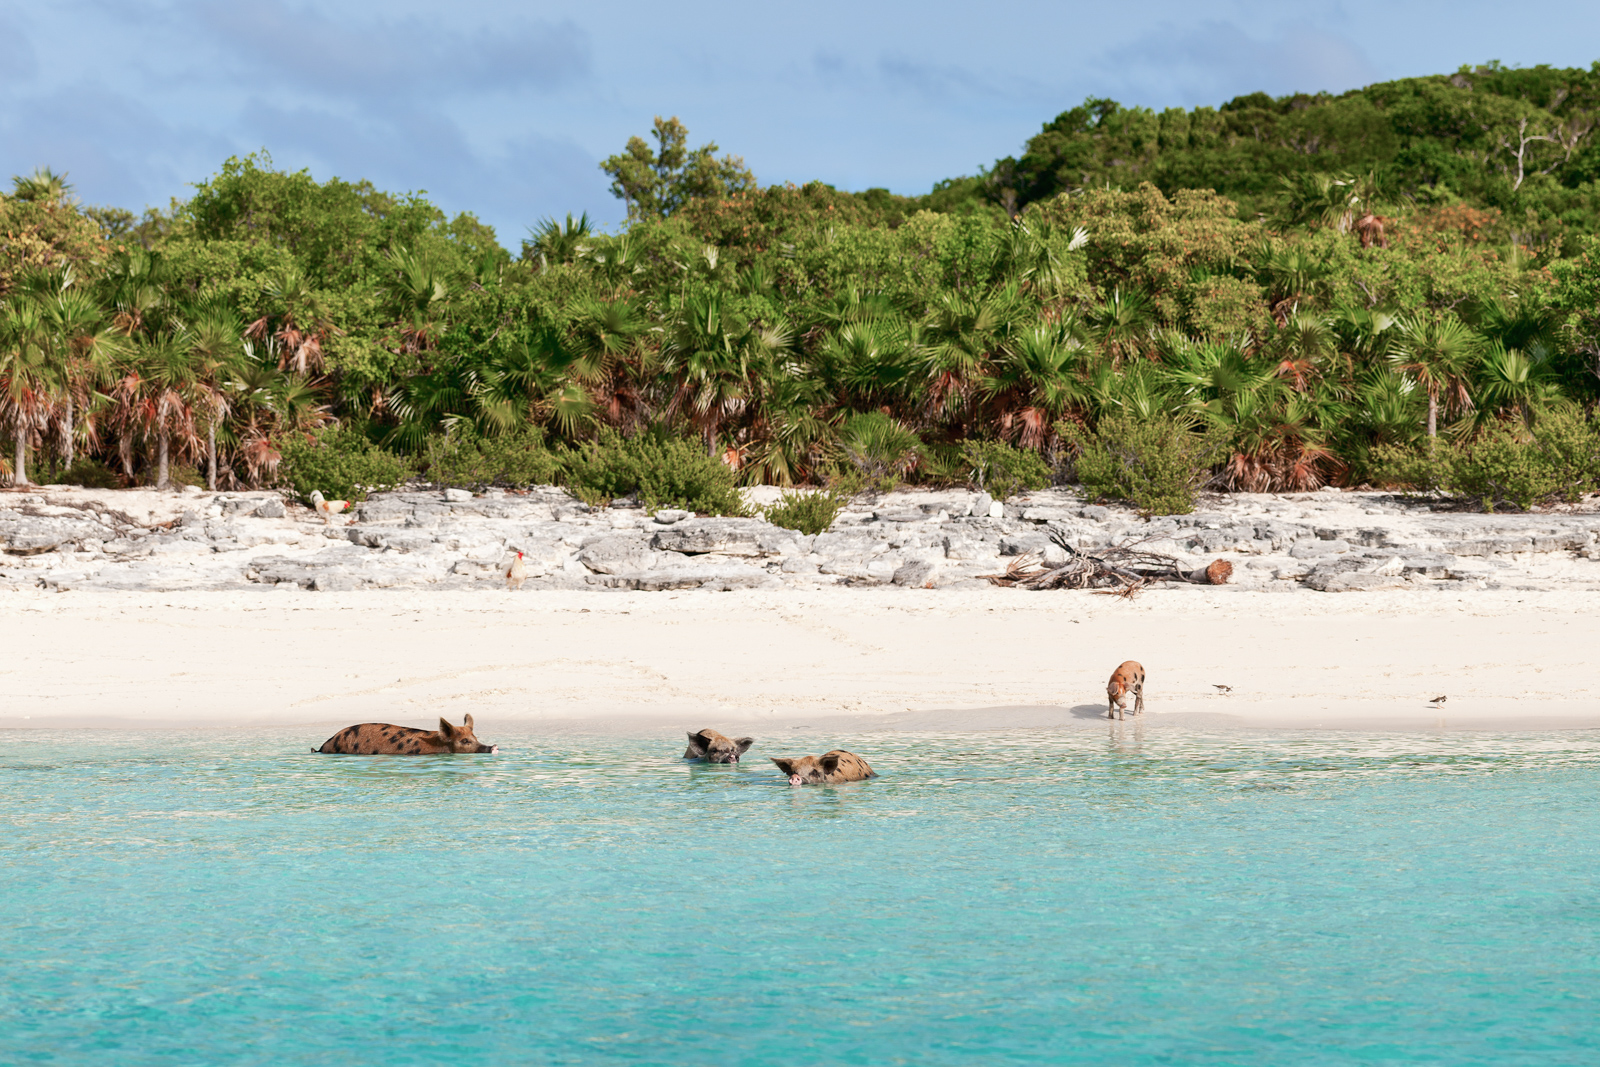 PIg Beach Bahamas in the Exumas. Visit Pig Island with a Bahamas Day Trip from Bahamas Air Tours